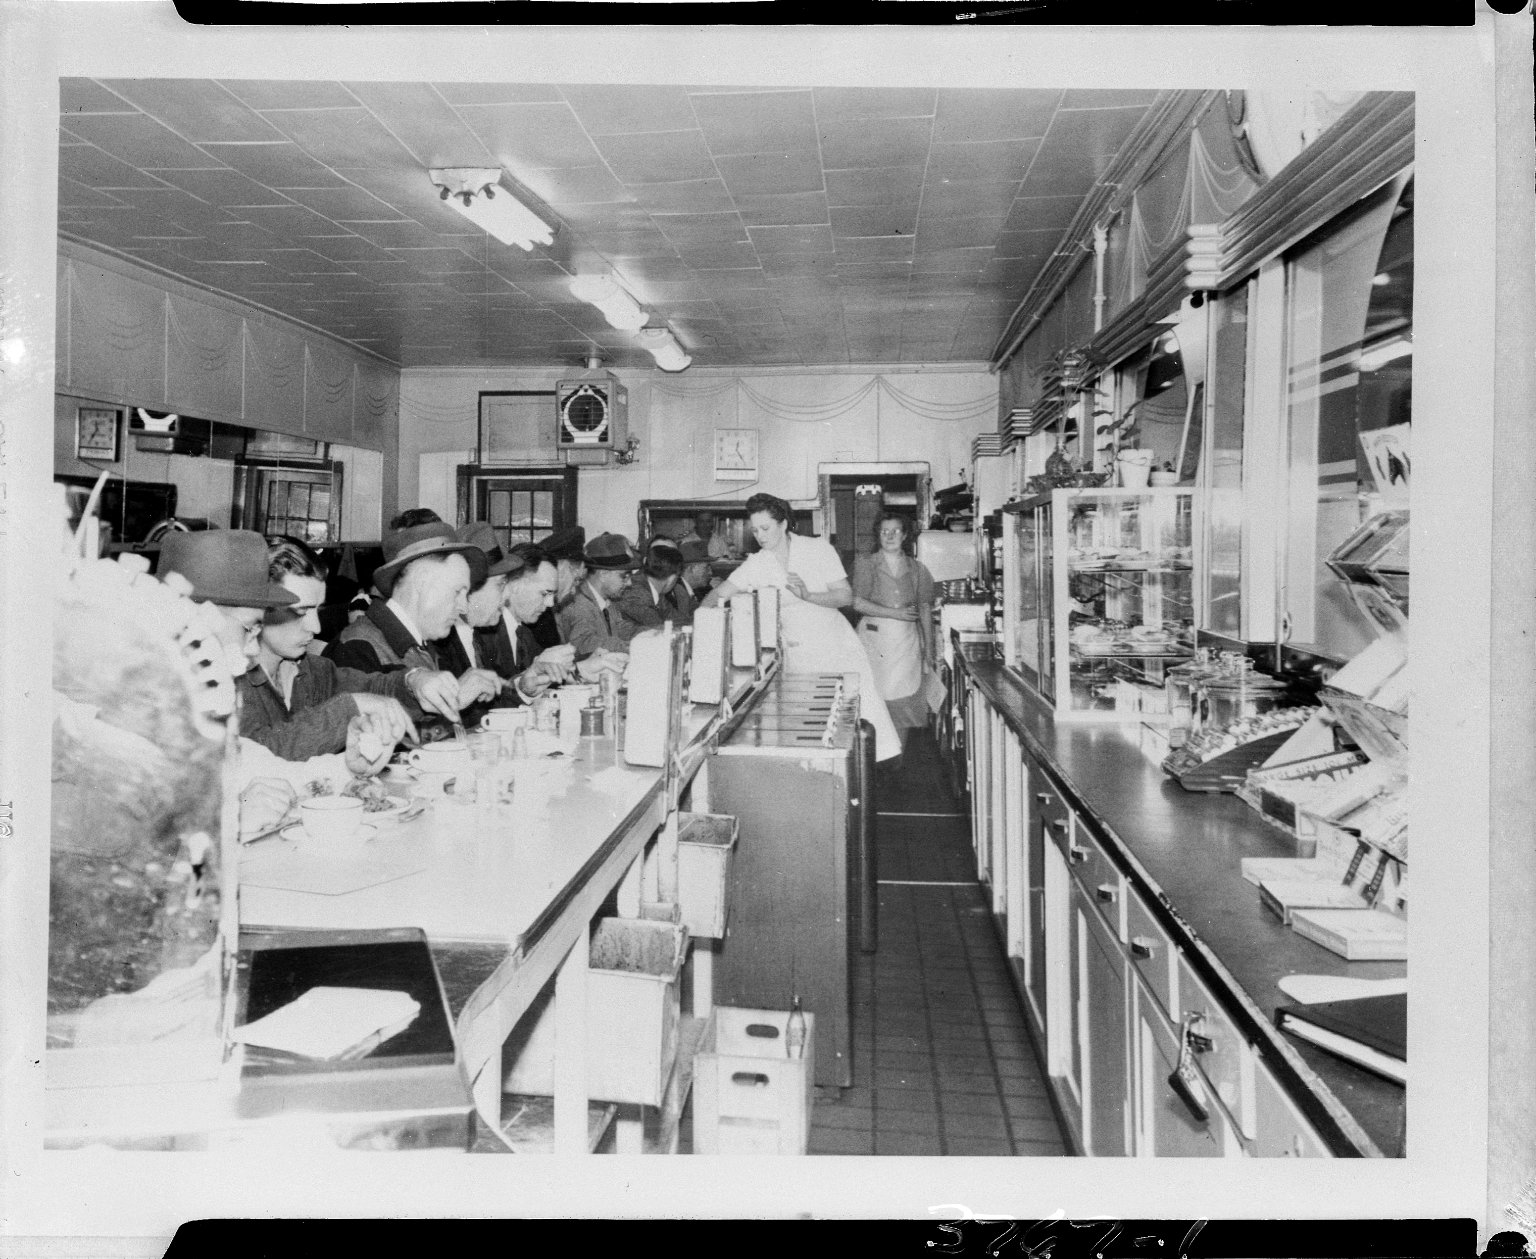 General Gas Light Company, diners and wait staff at a lunch counter